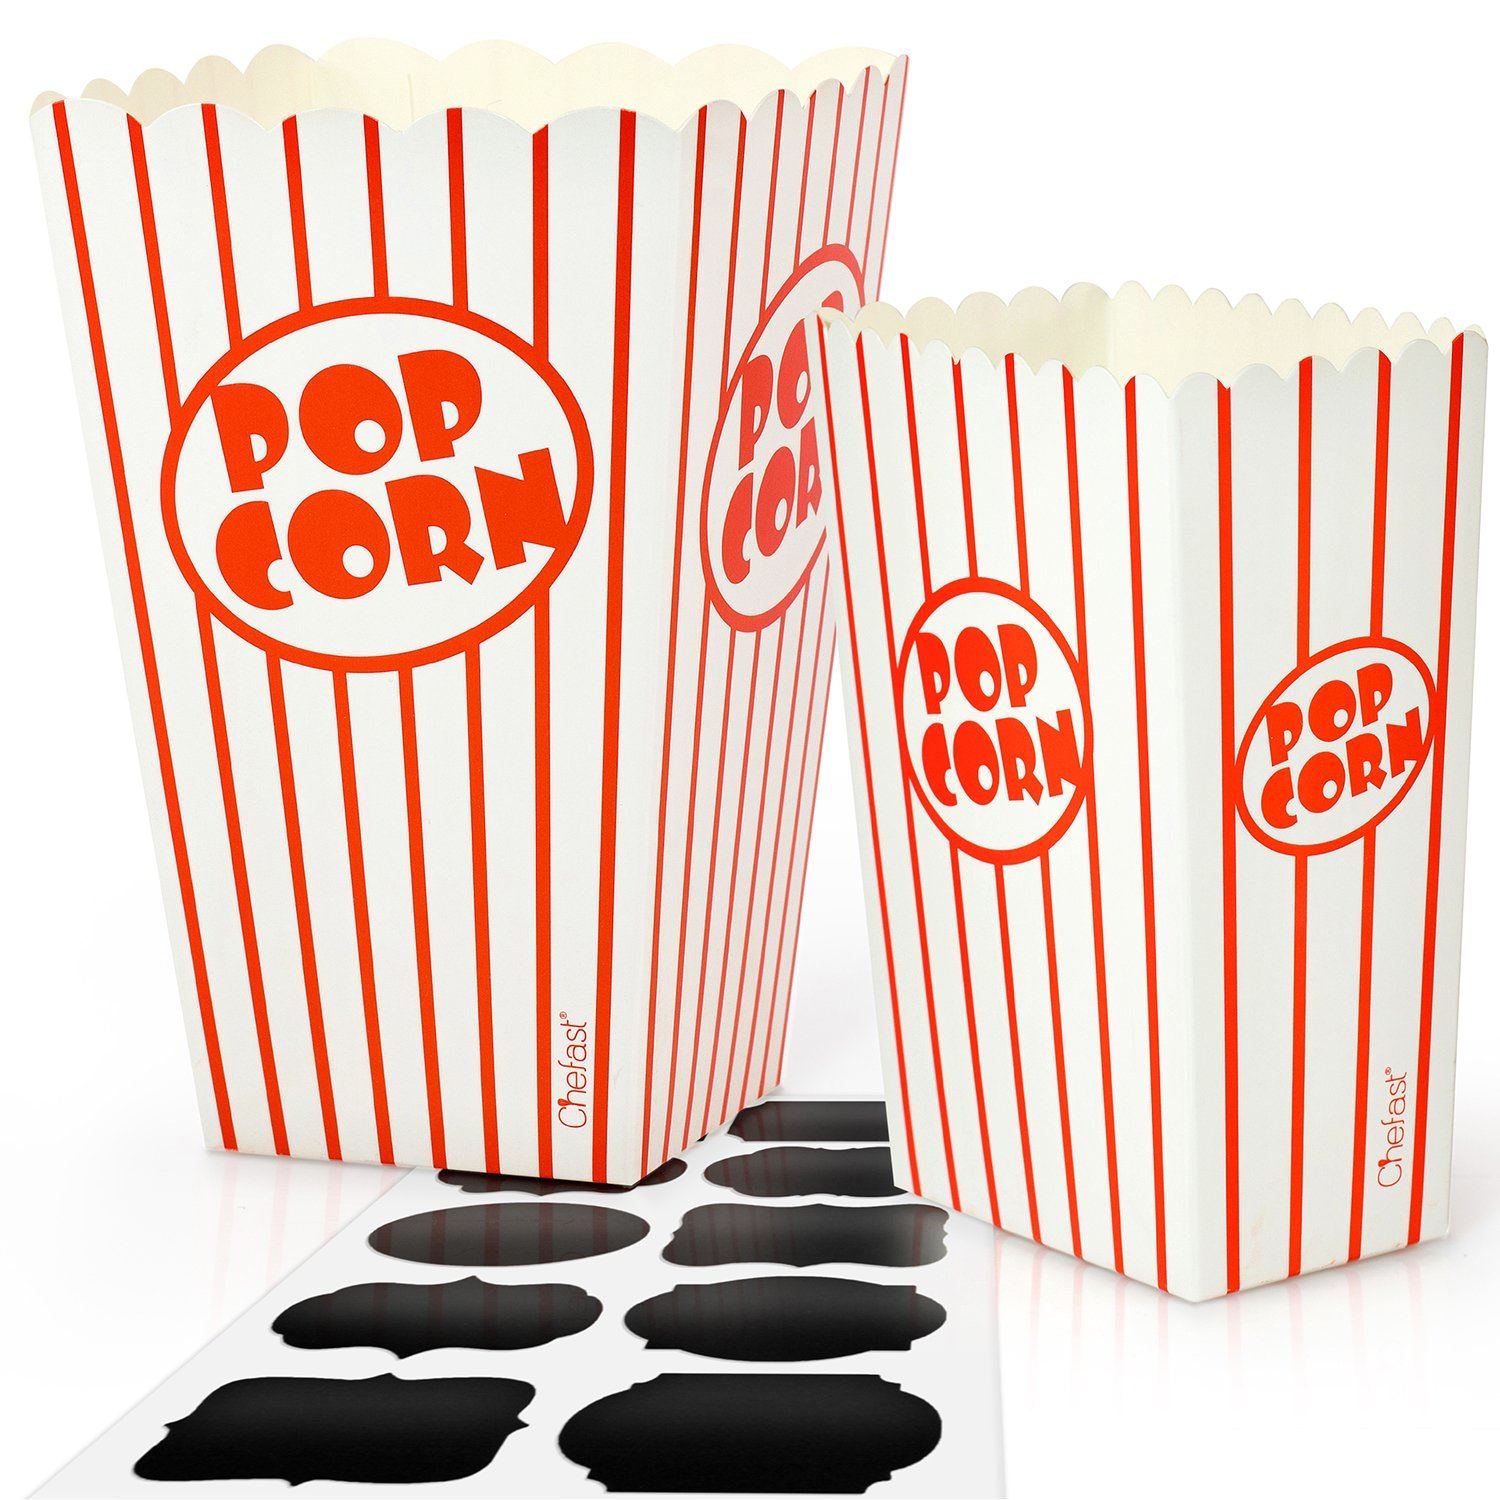 Chefast Popcorn Box Pack (24 Boxes) - 12x Medium and 12x Small Holders With 10x Chalkboard Stickers - Ultimate Party Favor - Great for Birthday and Theater Themed Parties, Movie Nights, Carnivals etc. by Chefast